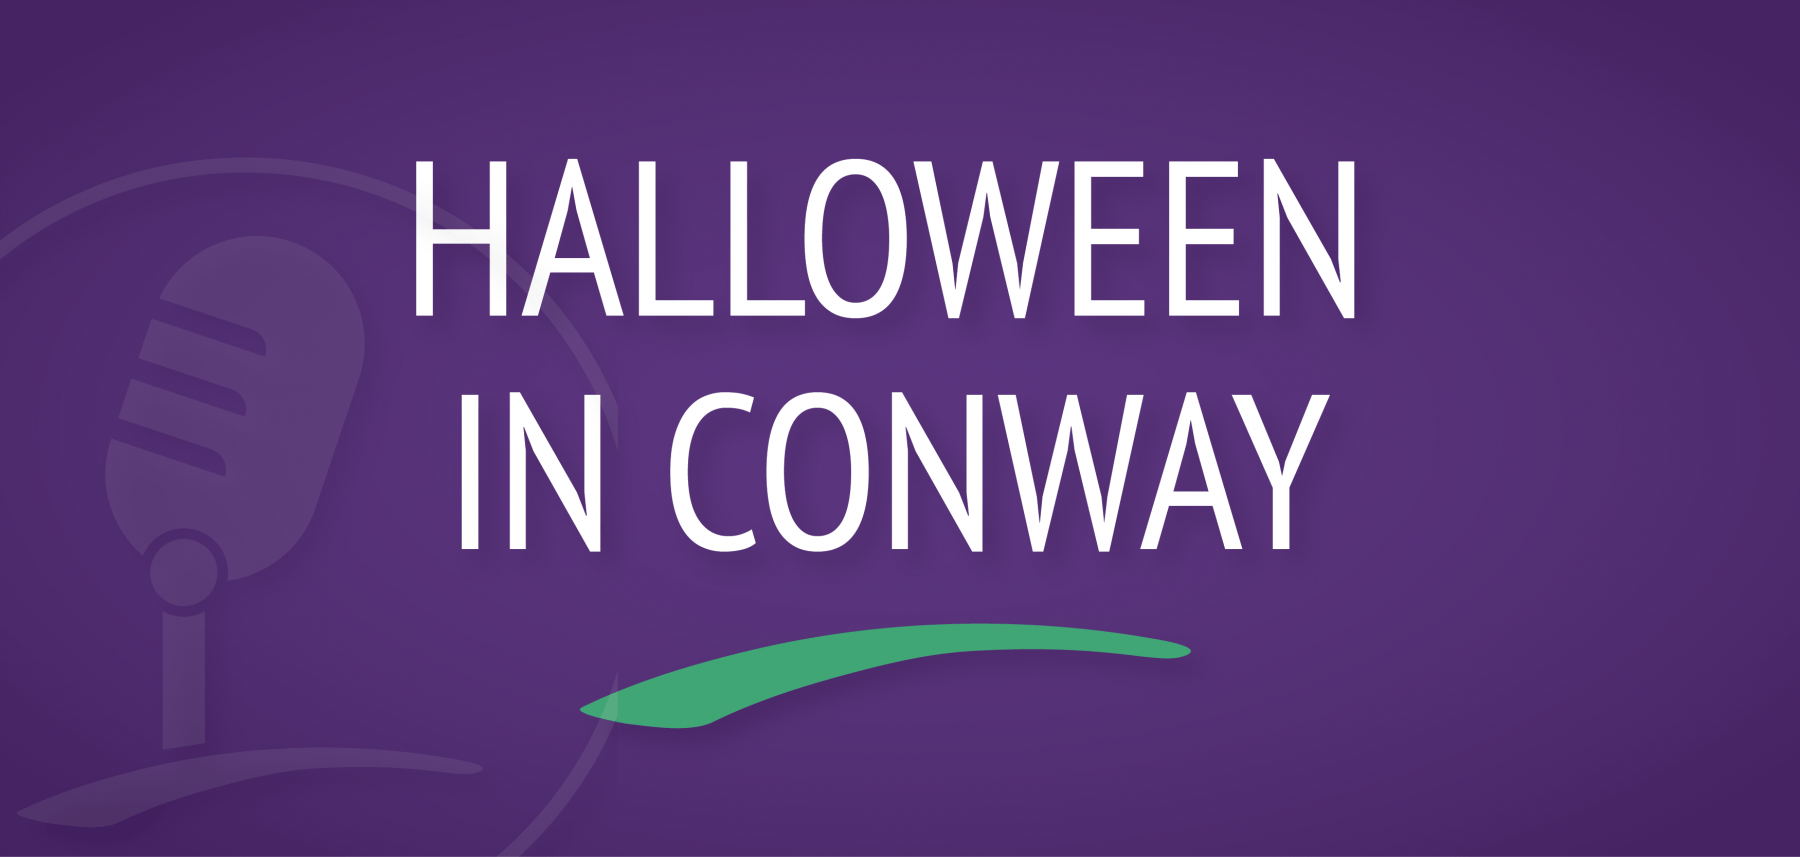 Halloween 2020 Showtimes Near Me Conway Conway Guide to Halloween Events 2018 | Conway Scene